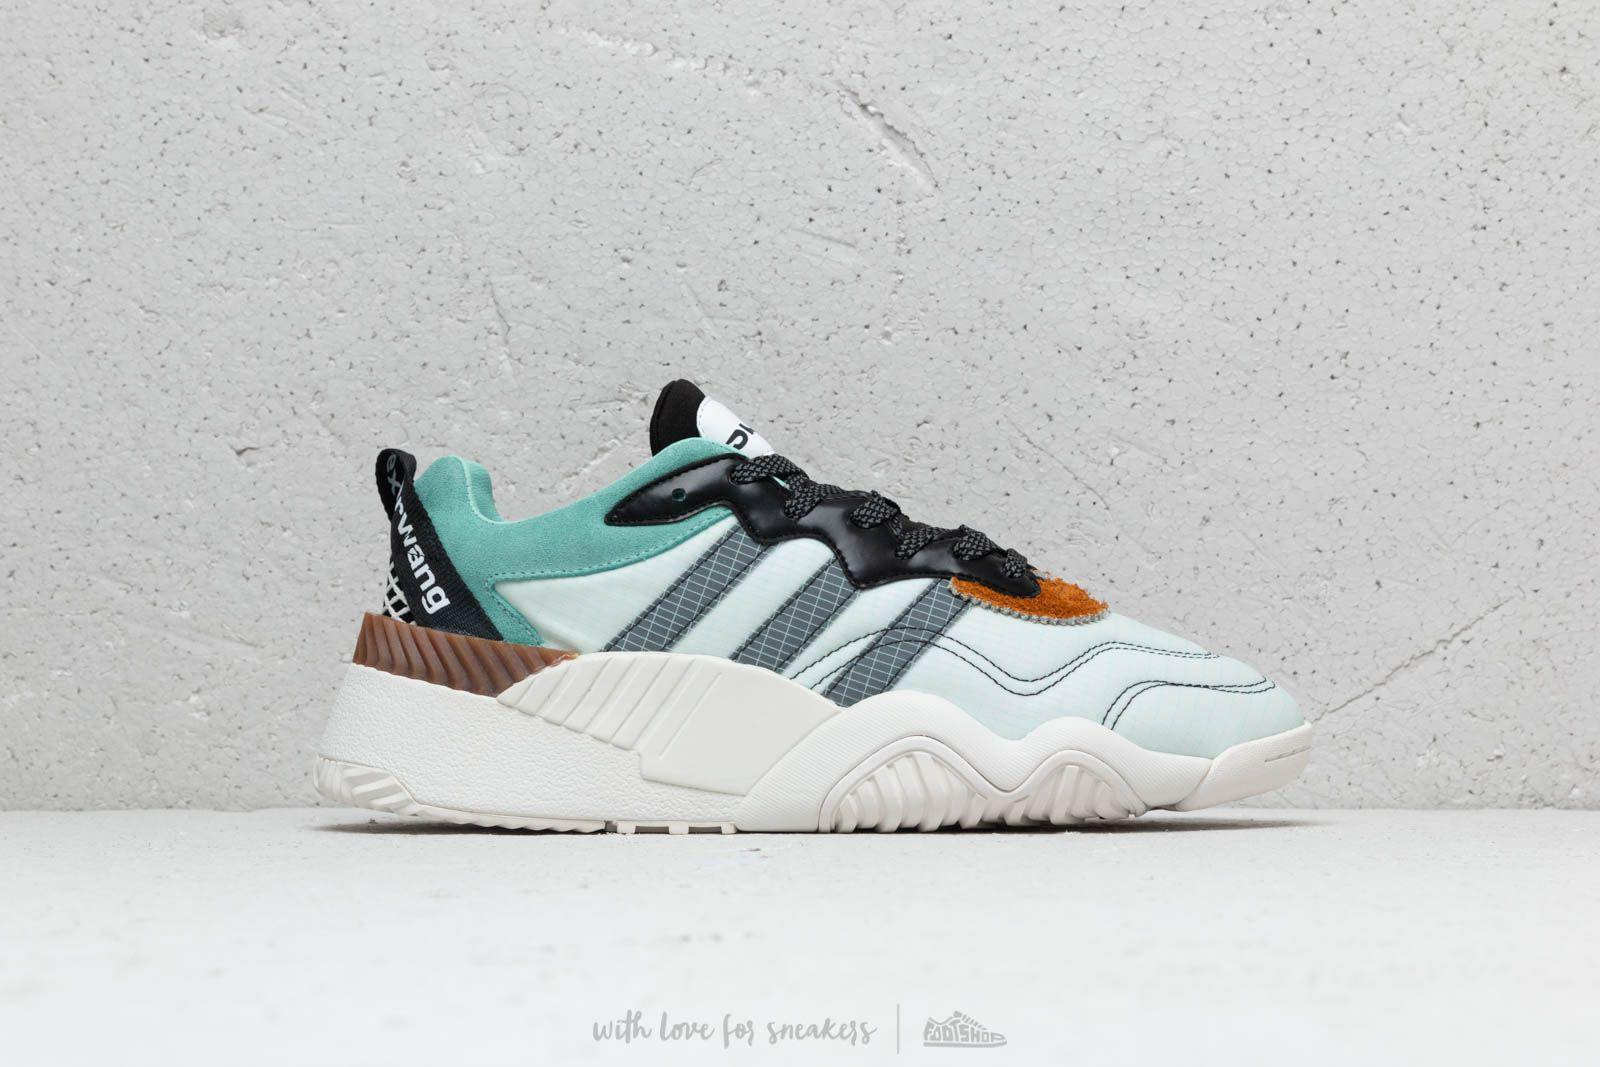 huge selection of af4d9 017be Lyst - Footshop Adidas X Alexander Wang Turnout Trainer Clea